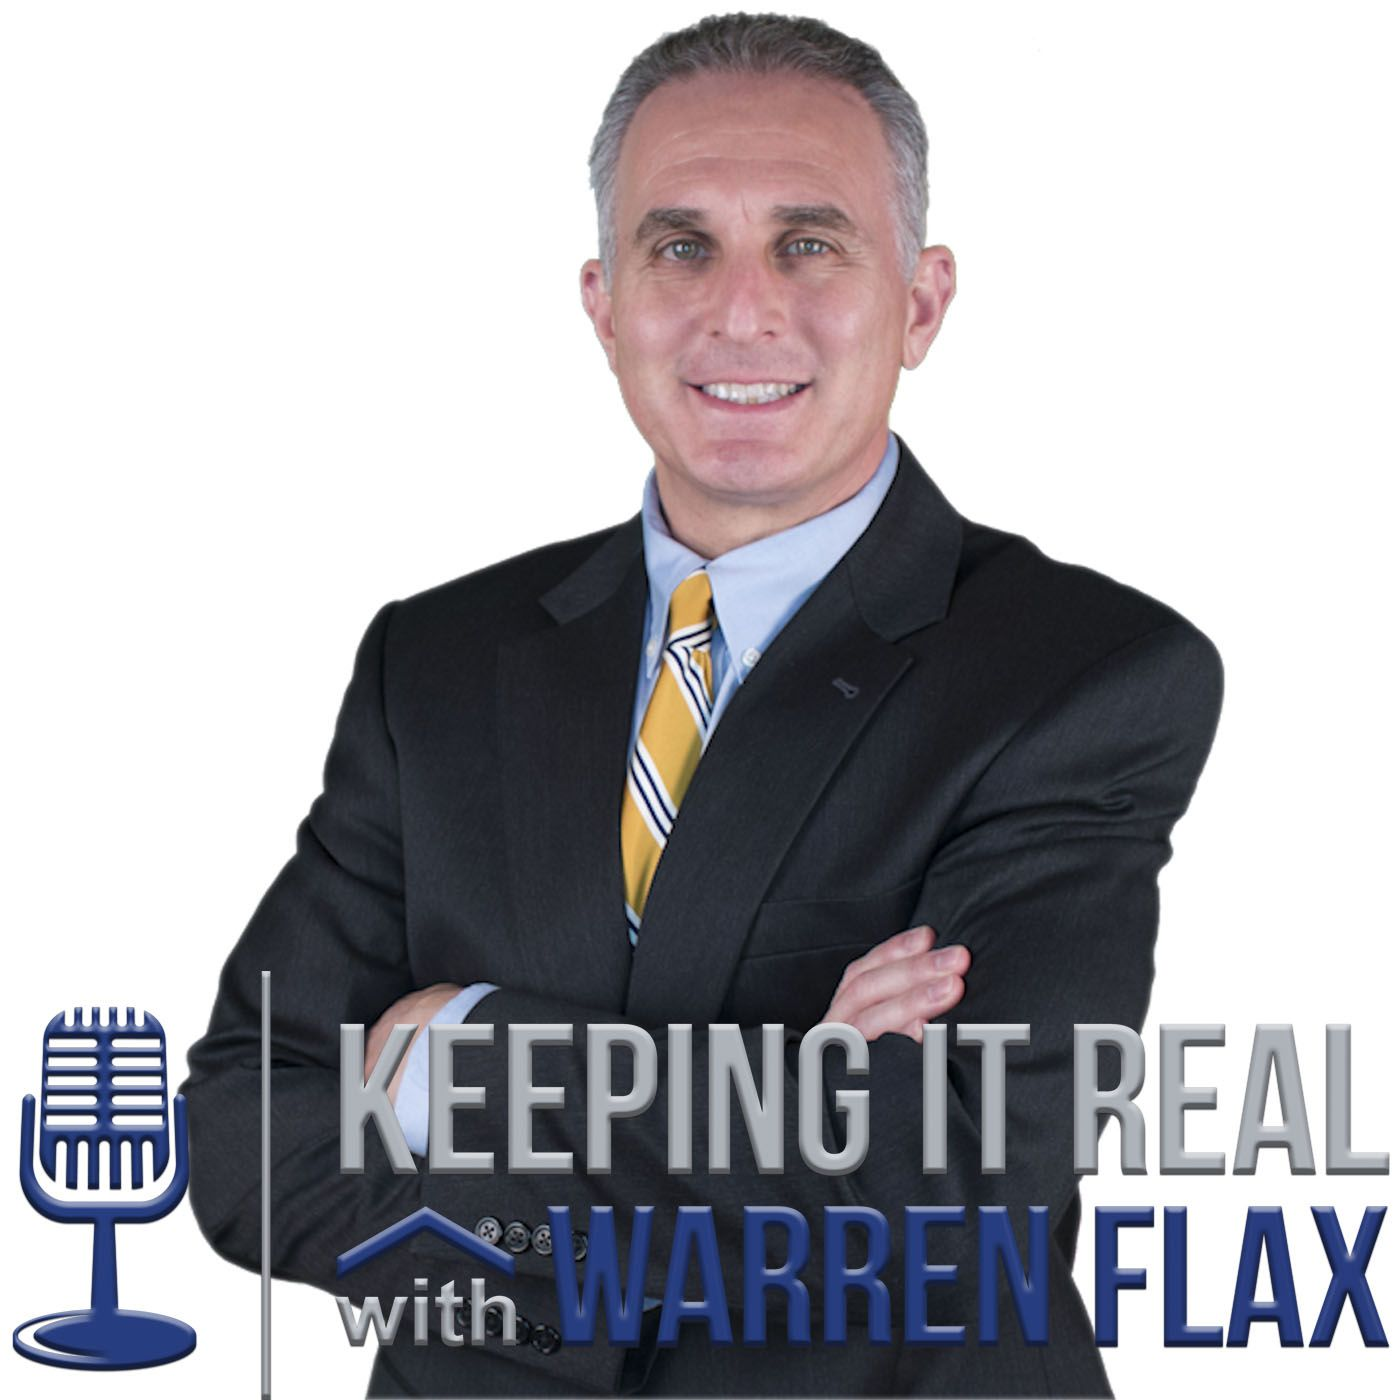 Keep it Real with Warren Flax